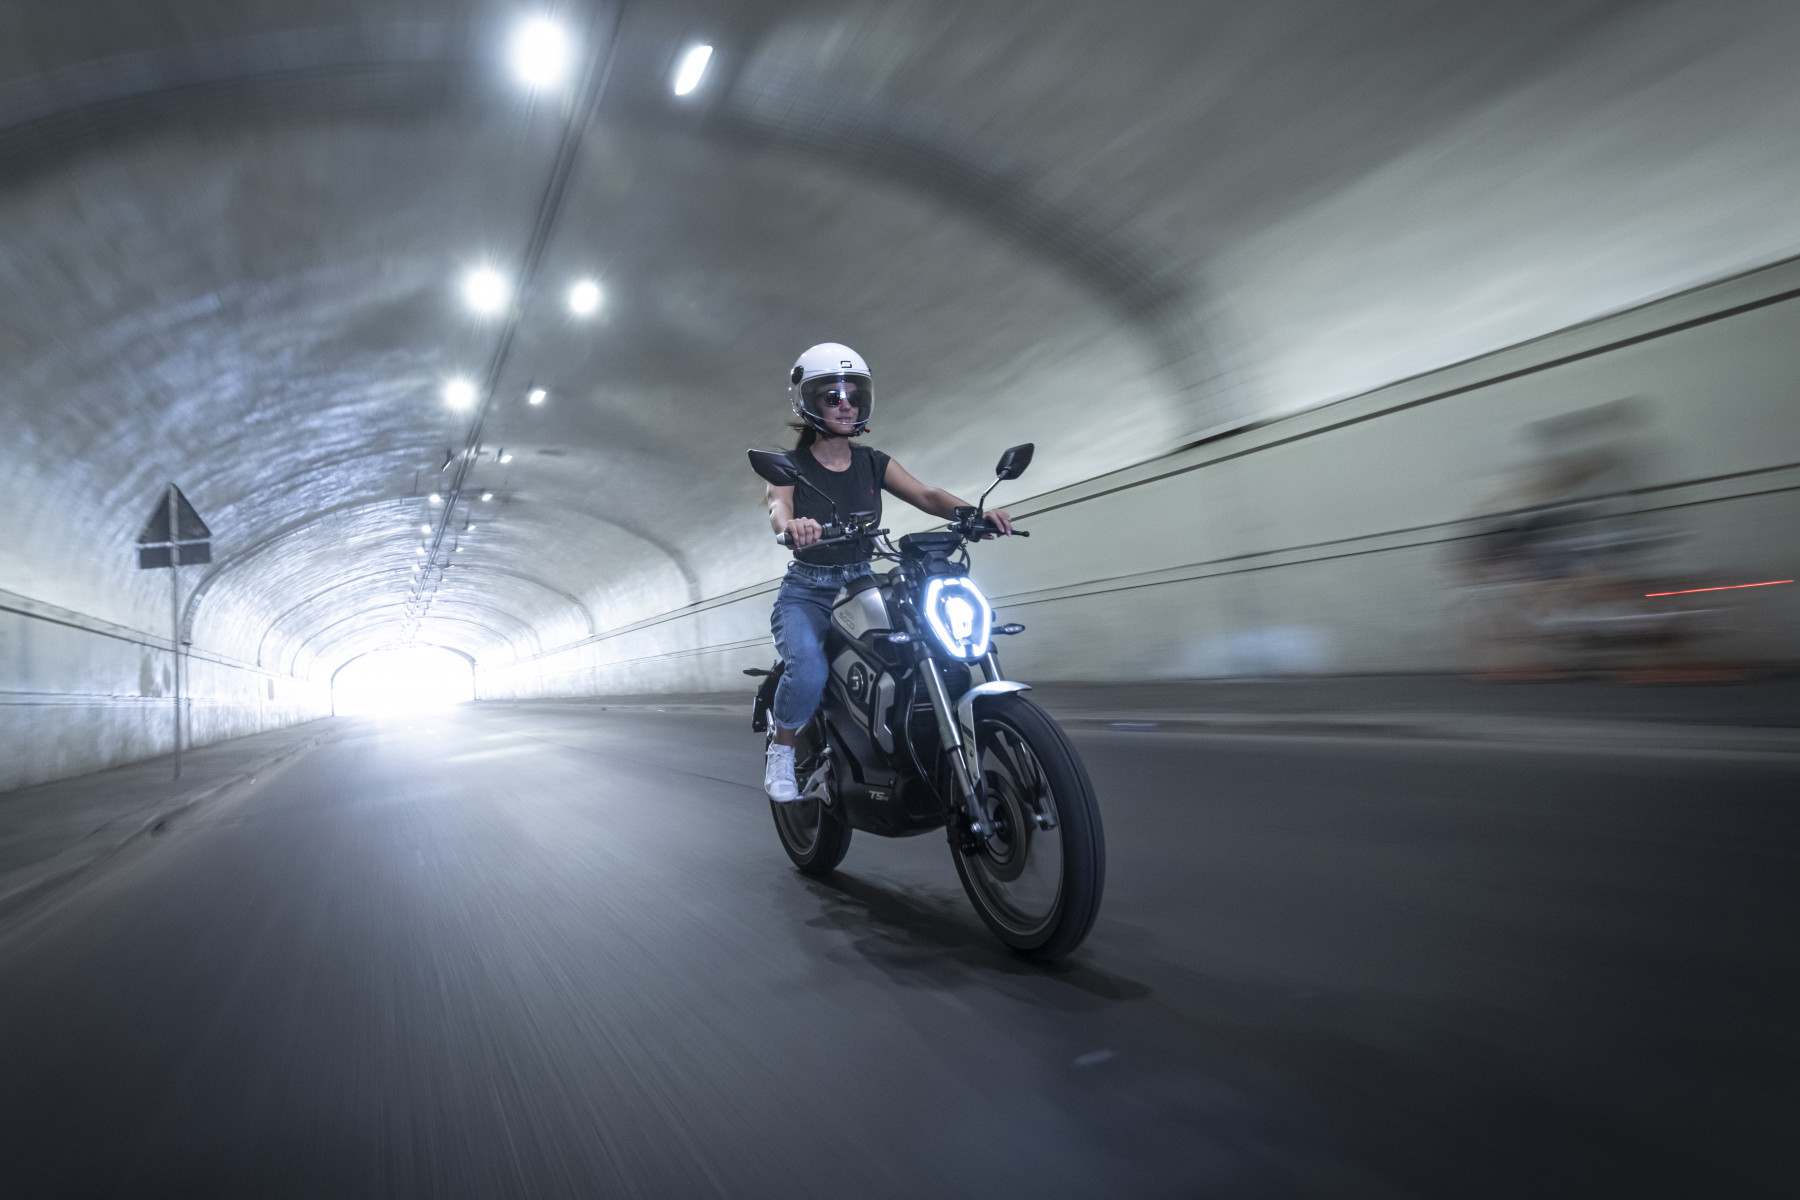 Super Soco TSx electric motorcycle being ridden